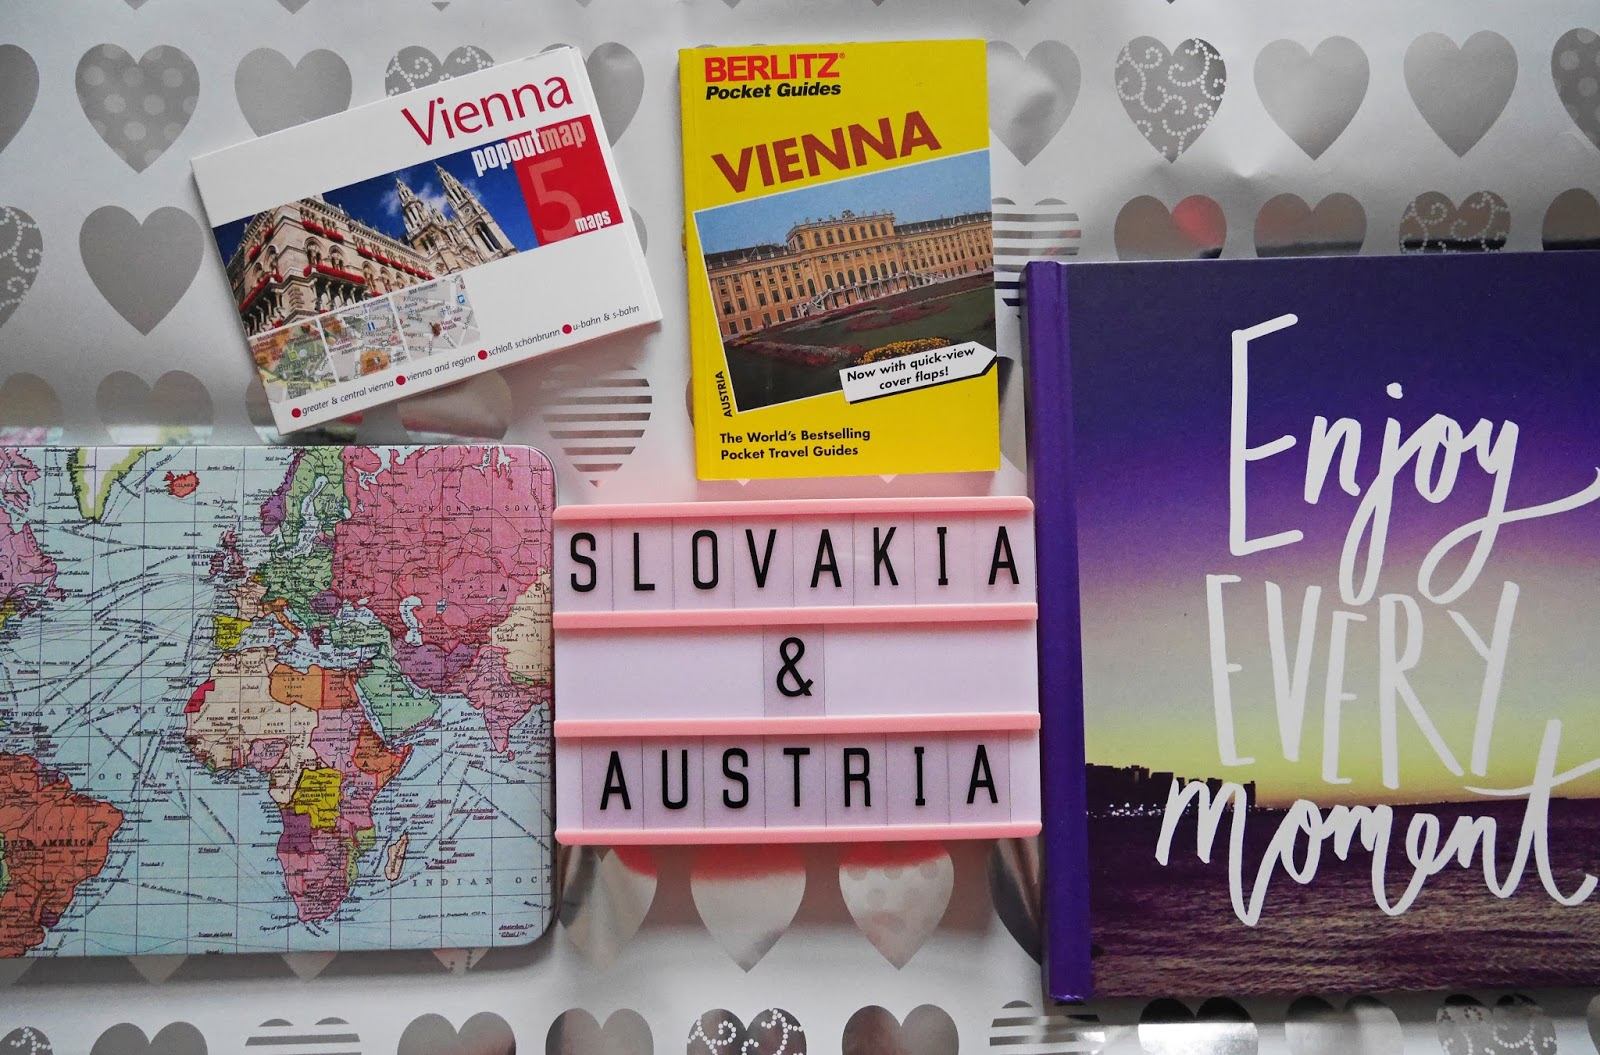 Slovakia and Austria travel collectibles. Visit multiple countries in one day - travel goals for 2018.